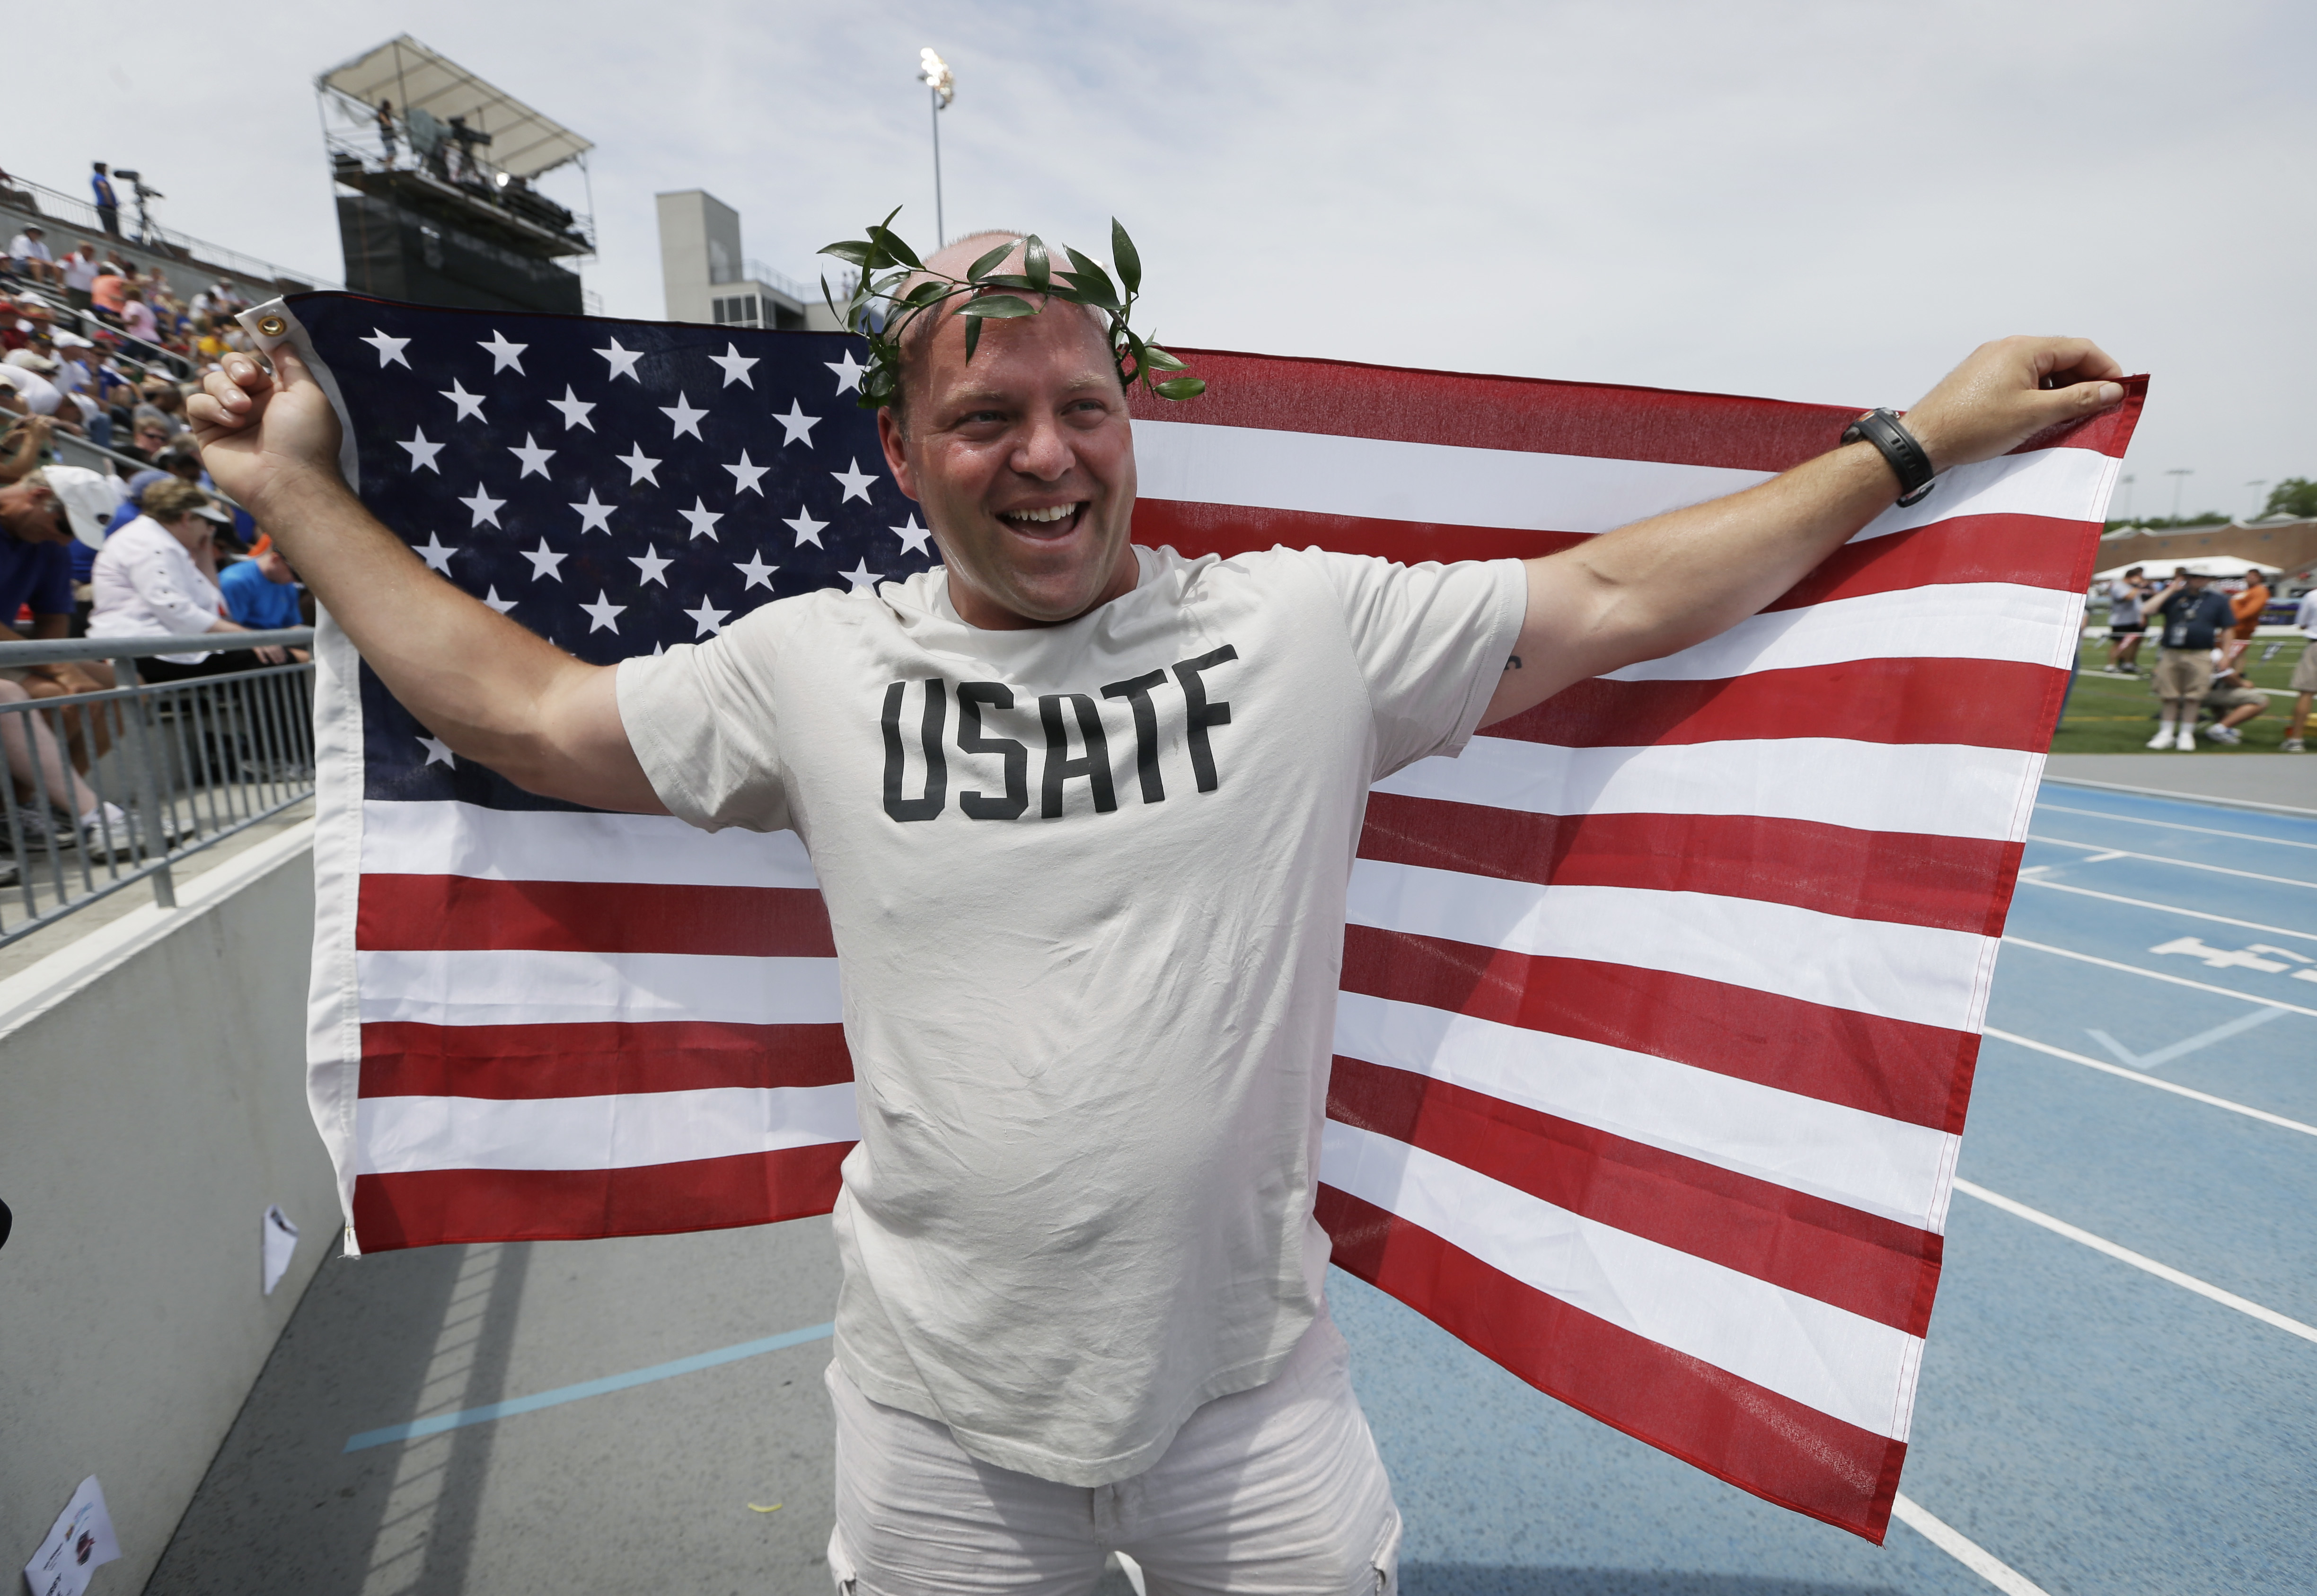 FILE - In this  June 23, 2013, file photo, American shot putter Adam Nelson reacts to the crowd after being honored as the 2004 Olympic champion during a ceremony at the U.S. Championships athletics meet in Des Moines, Iowa. After being retired for nearly